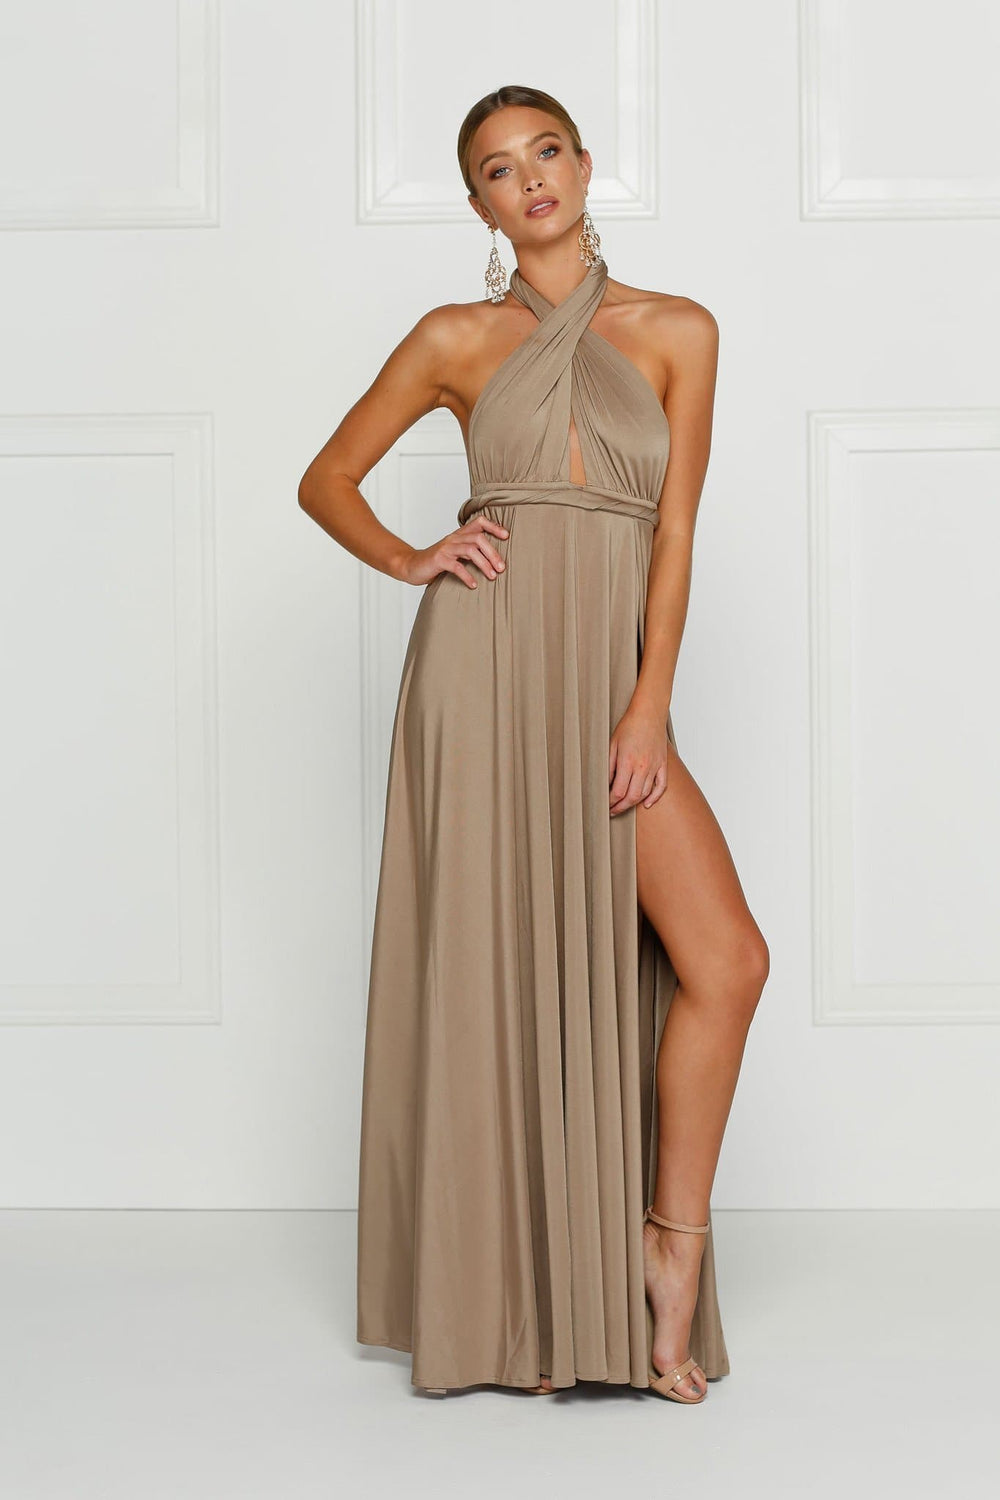 Catalina - Bronze Backless Jersey Gown with Plunge Neck & Side Slits